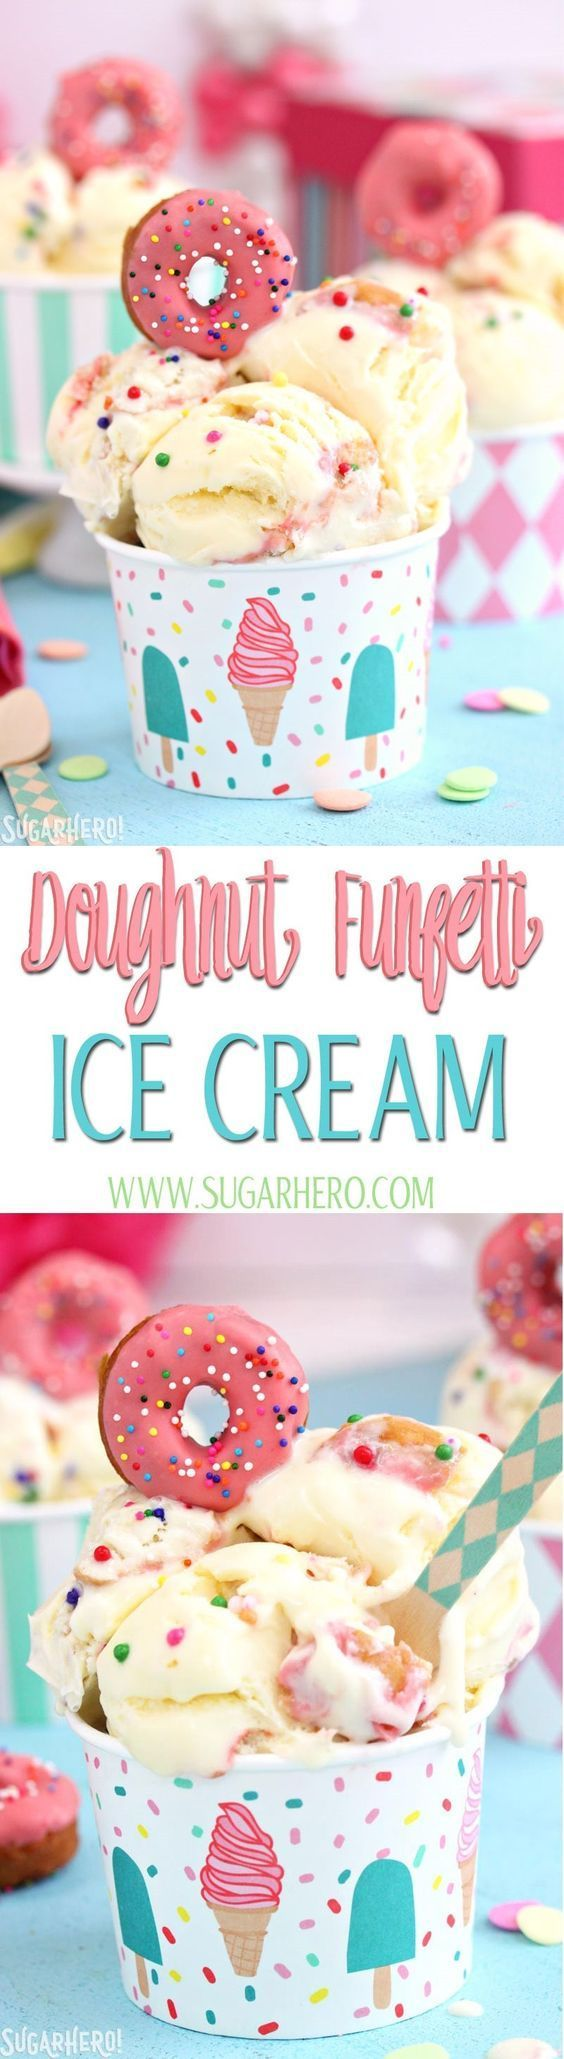 Doughnut Funfetti Ice Cream - delicious homemade ice cream with REAL doughnut pieces and sprinkles mixed right in! | From http://SugarHero.com